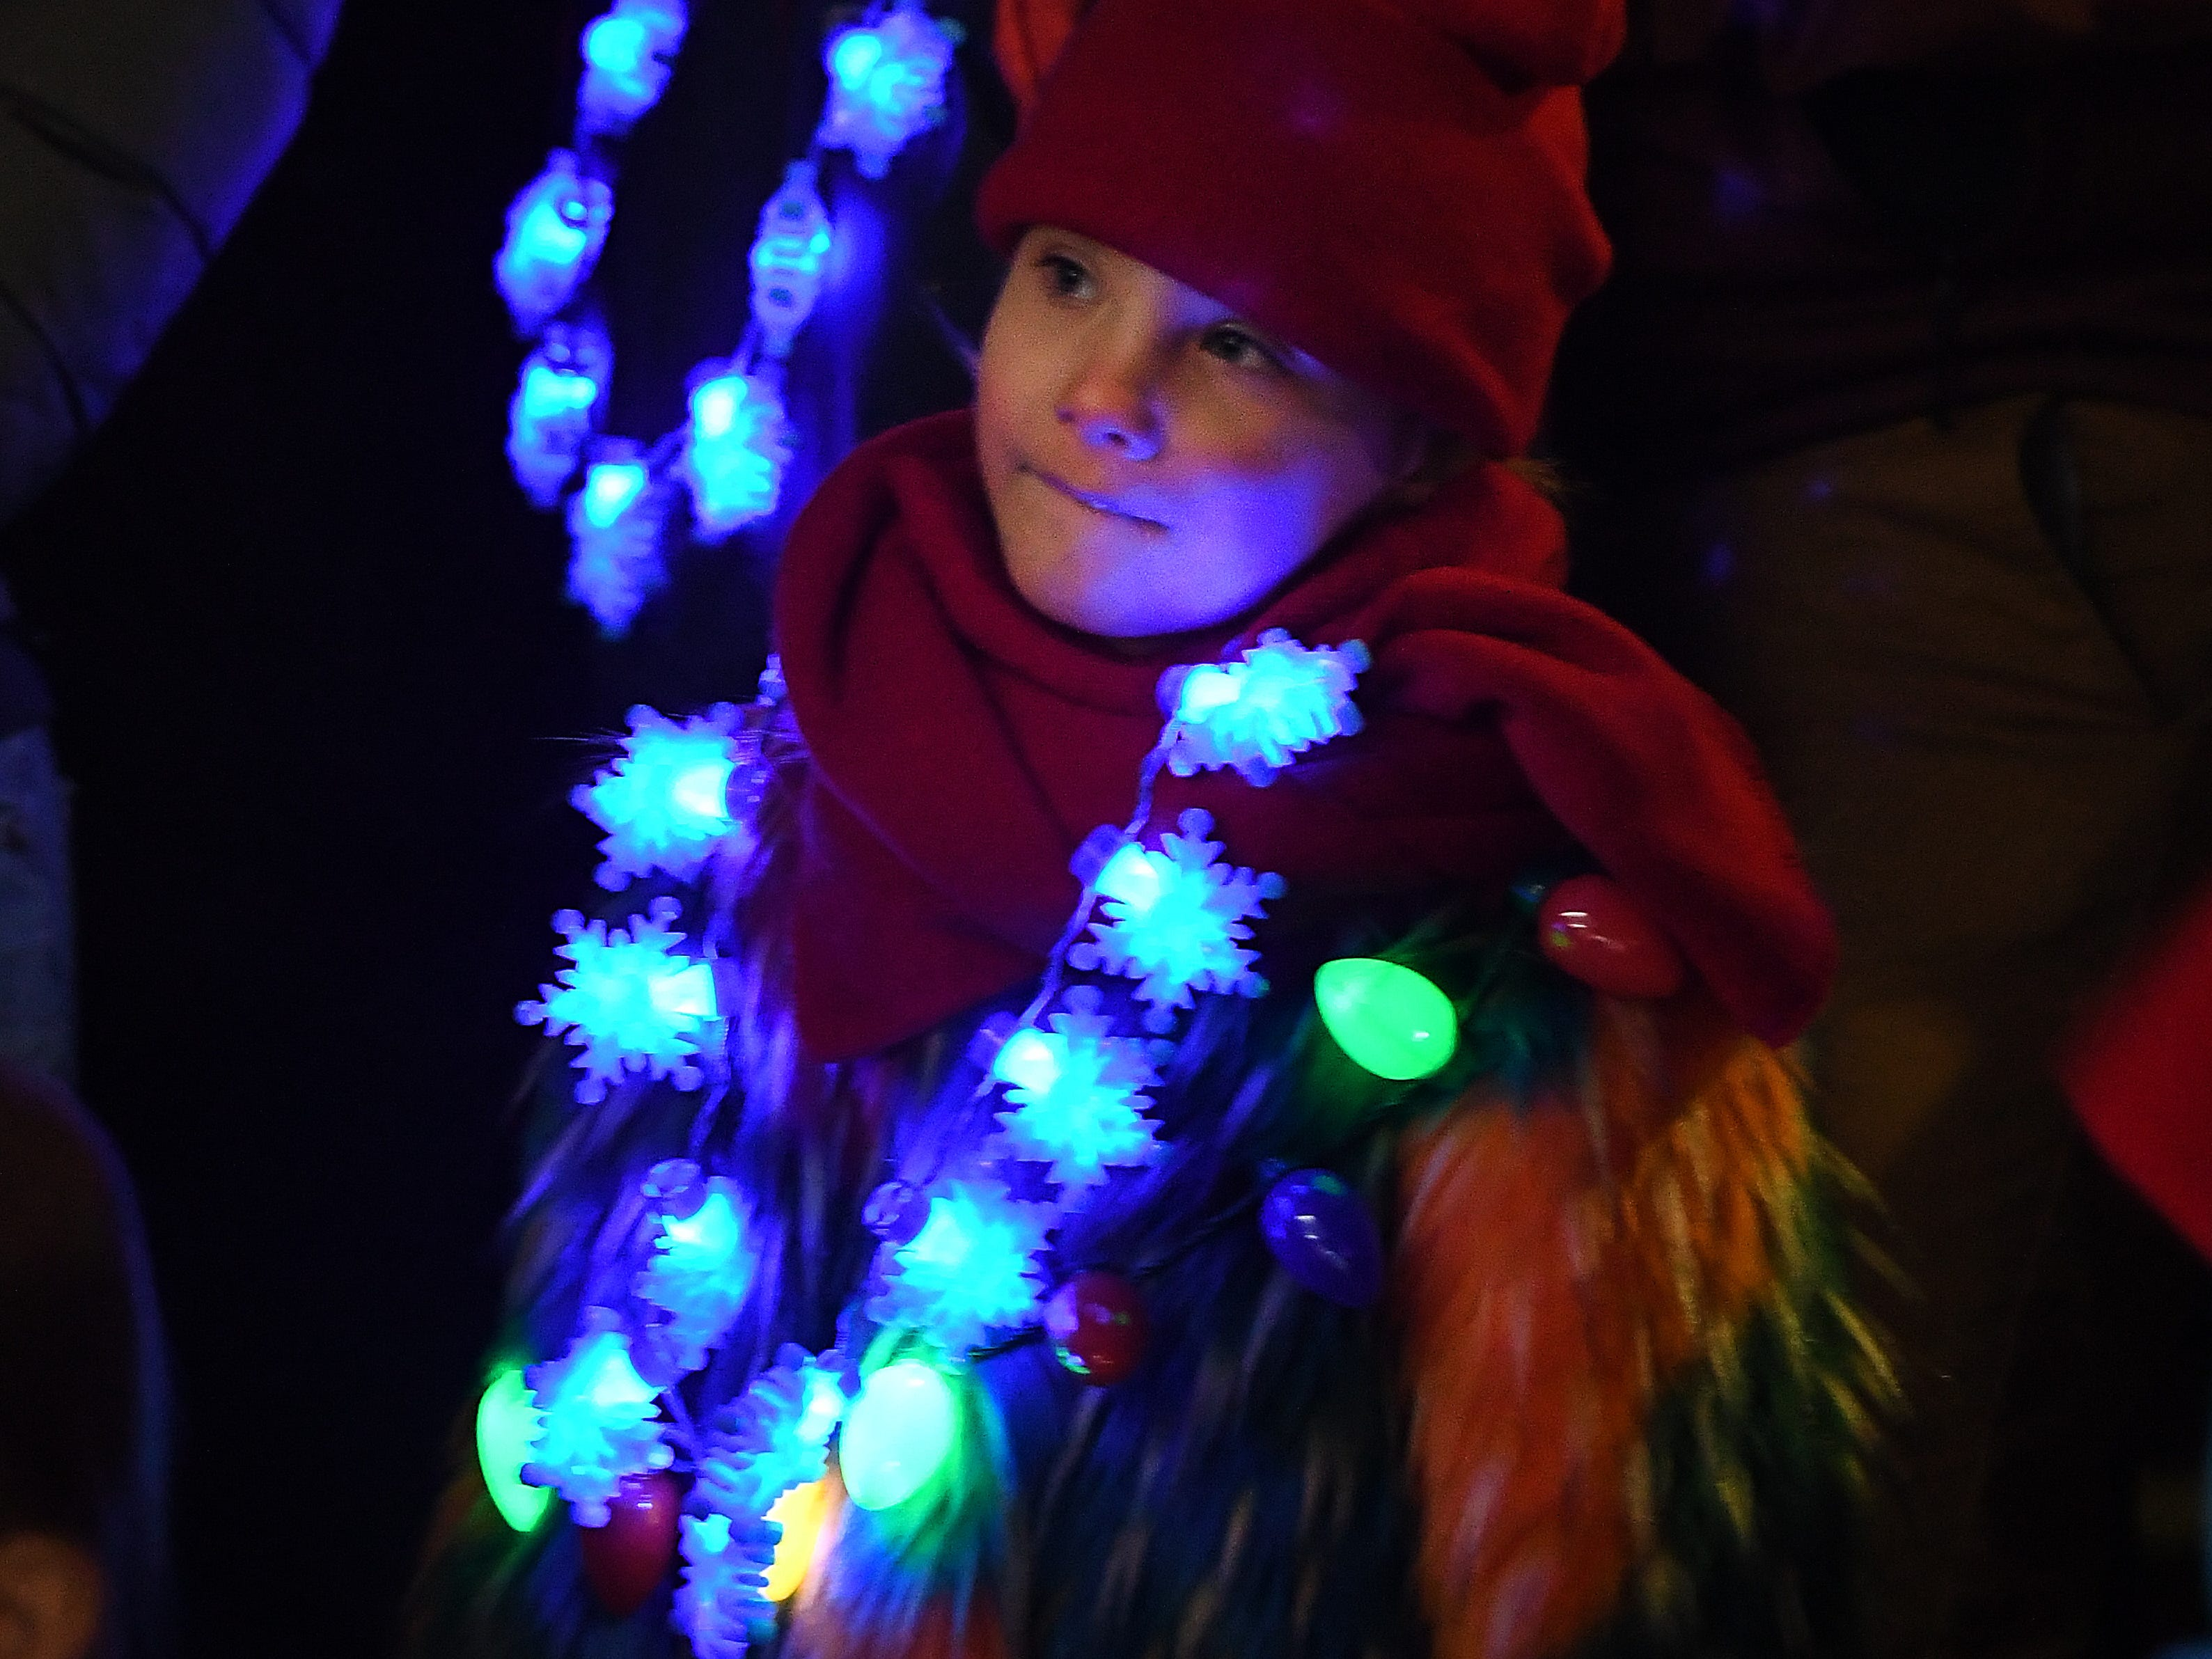 Alexis Ciucanu, 5 listens to Christmas caroling, waiting patiently for Santa Claus to arrive at The Big, Bright Light Show.